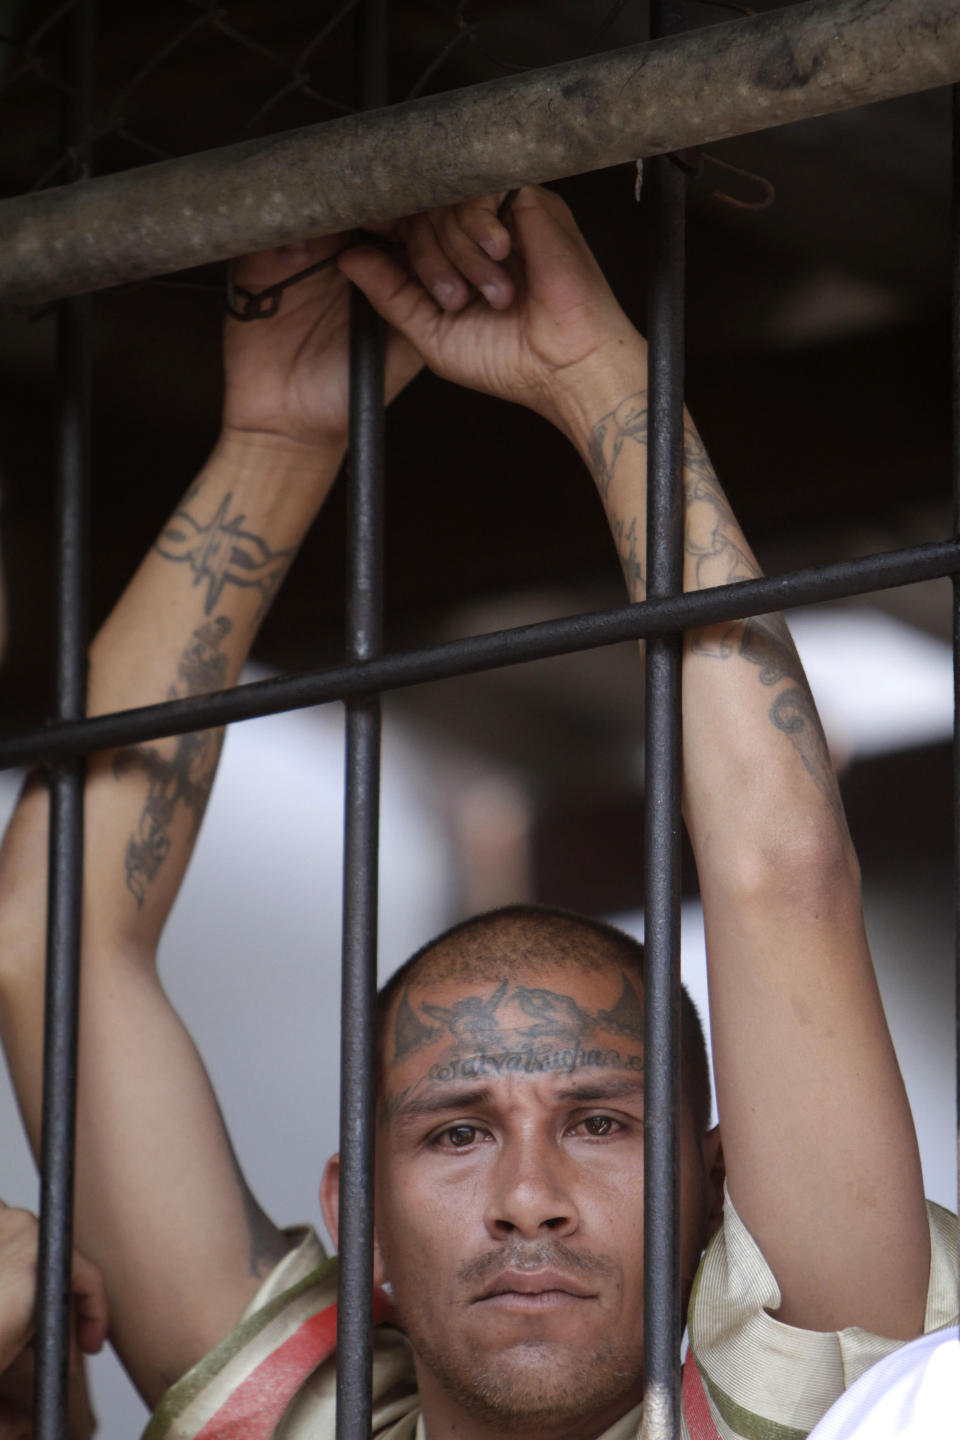 Behind bars, a Mara Salvatrucha gang member attends a mass celebrated by Archbishop Luigi Pezzuto, Apostolic Nuncio to El Salvador, and head army and police chaplain Monsignor Fabio Colindres at a prison in Ciudad Barrios, El Salvador, Monday, March 26, 2012. According to Dionisio Aristides Umanzor, known as El Sirra, leader of the Mara Salvatrucha gang, leaders of the Mara Salvatrucha and the Mara 18, El Salvador's two largest street gangs, have reached a truce, reducing the country's homicide rate, one of the highest in the world. (AP Photo/Luis Romero)